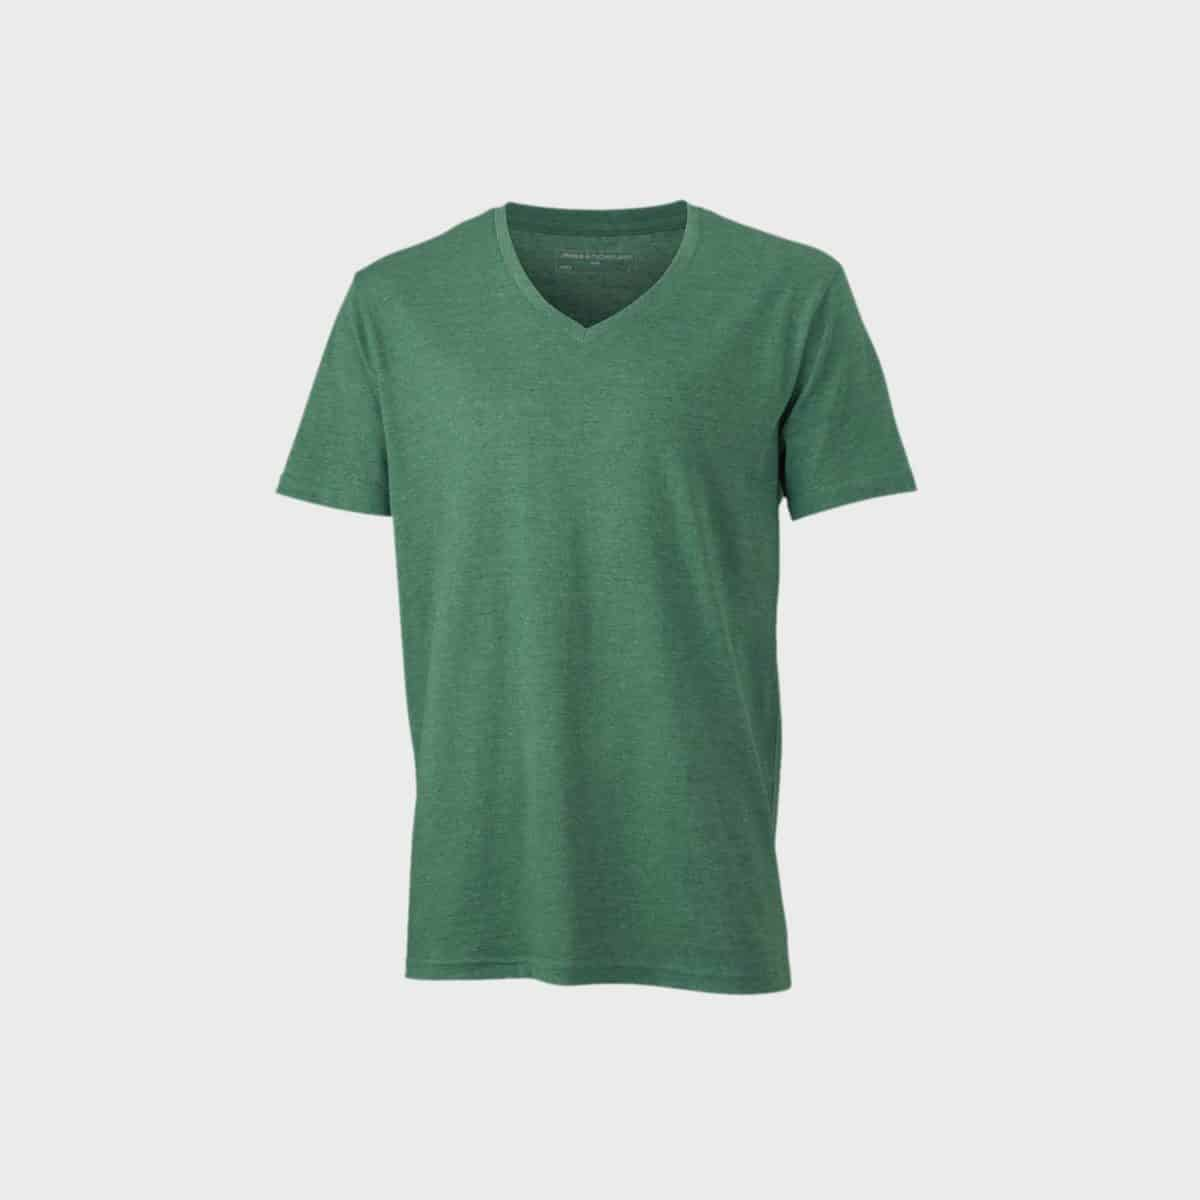 v-neck-heather-t-shirt-herren-greenmelange-kaufen-besticken_stickmanufaktur